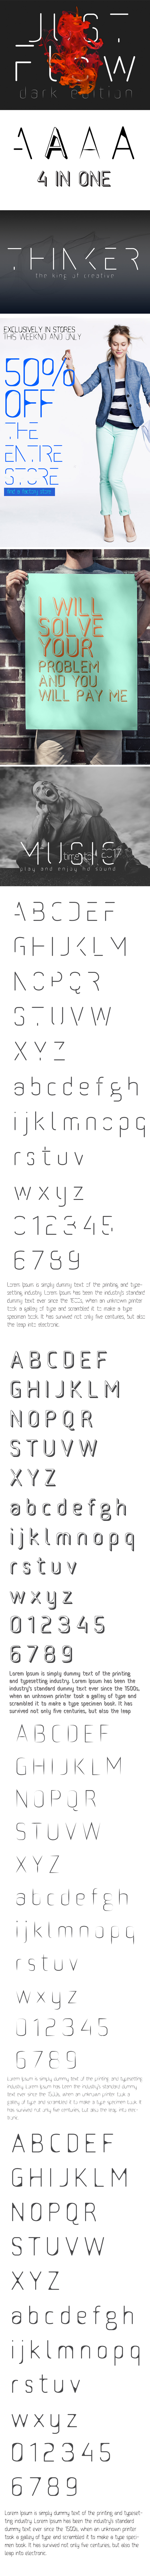 Thinker Font - Sans-Serif Fonts